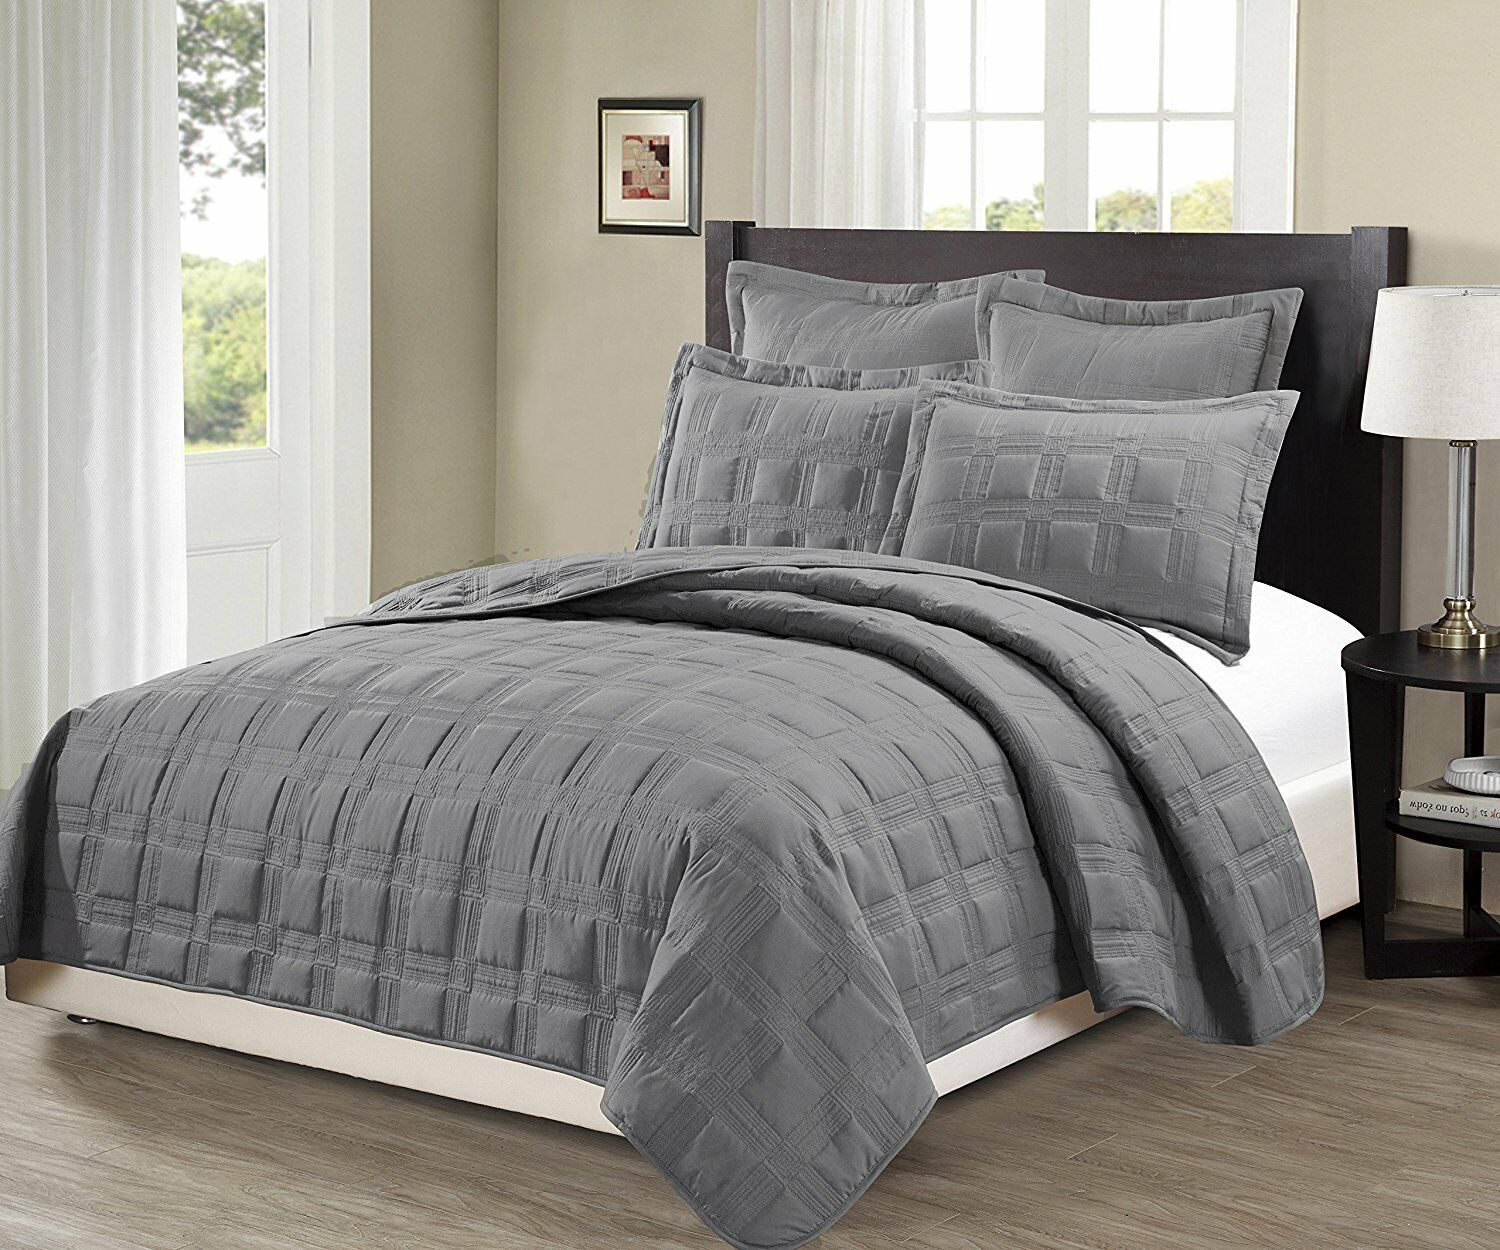 Fancy Linen 3pc OverGröße Target Quilted Embroidery Solid grau Bedspread New